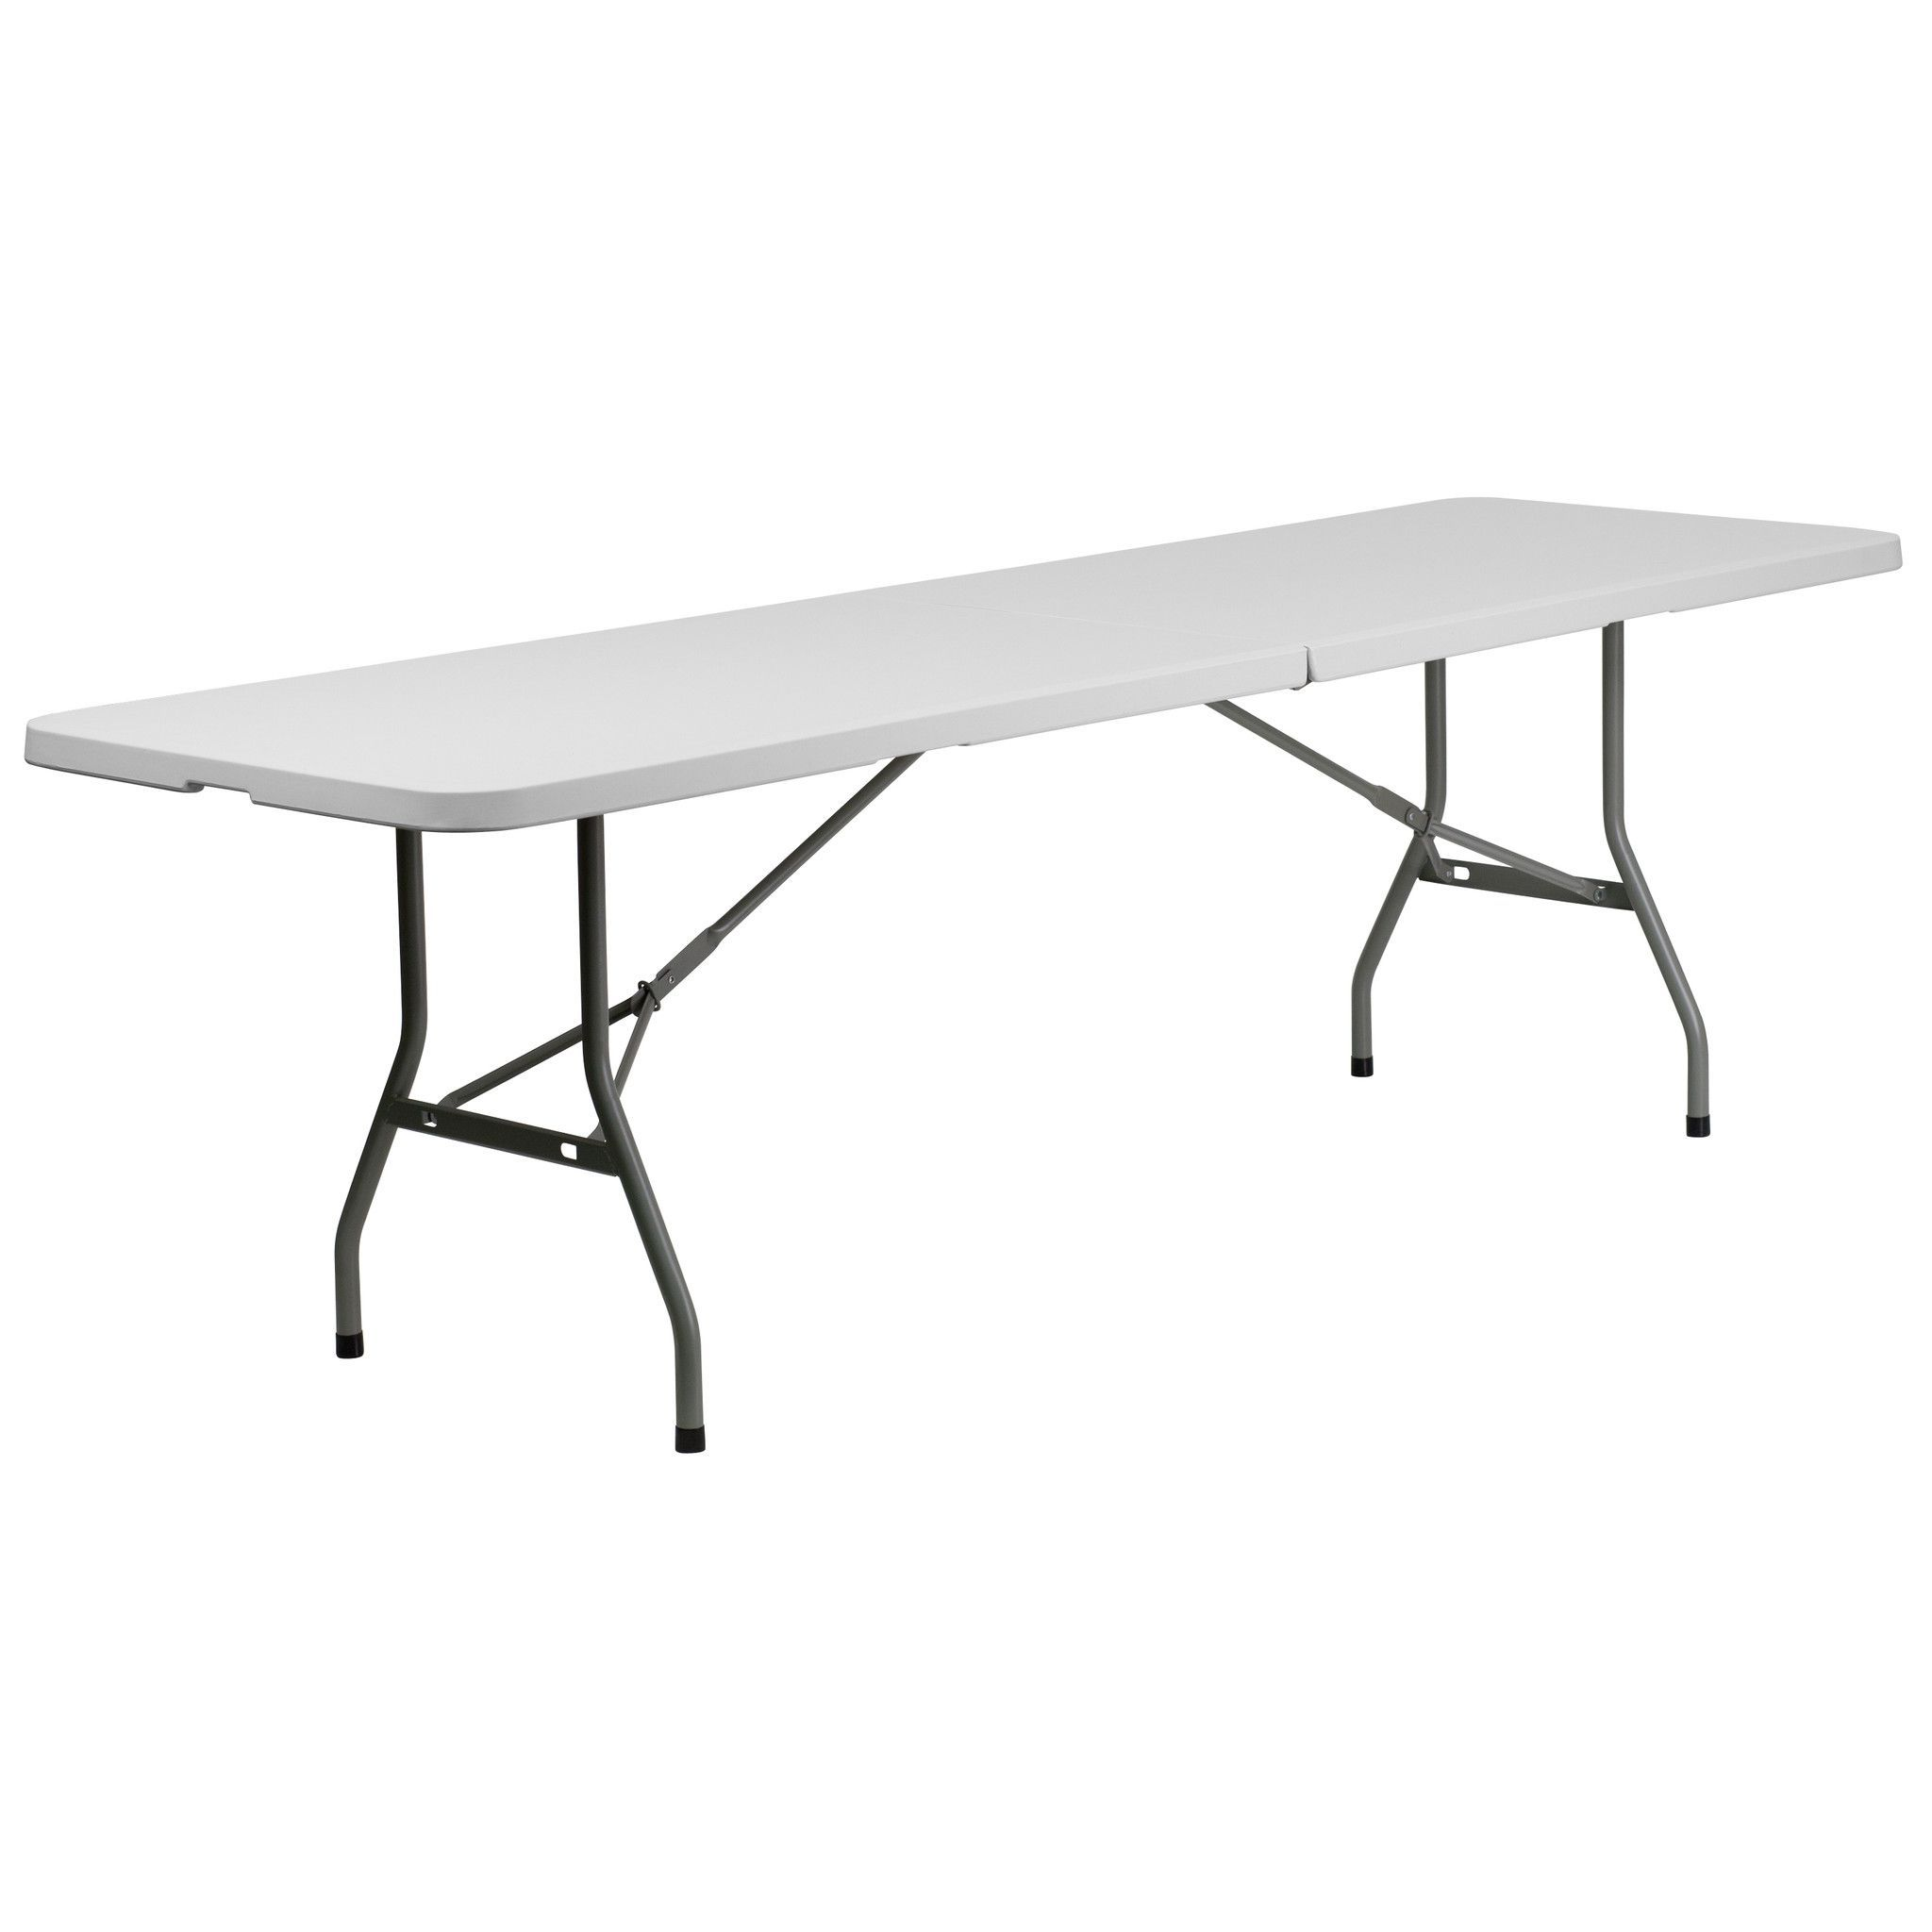 This Rectangular Folding Table Is 8 Feet Long And Is Beneficial In A Multitude Of Settings That Include B Flash Furniture Folding Table Camping Table